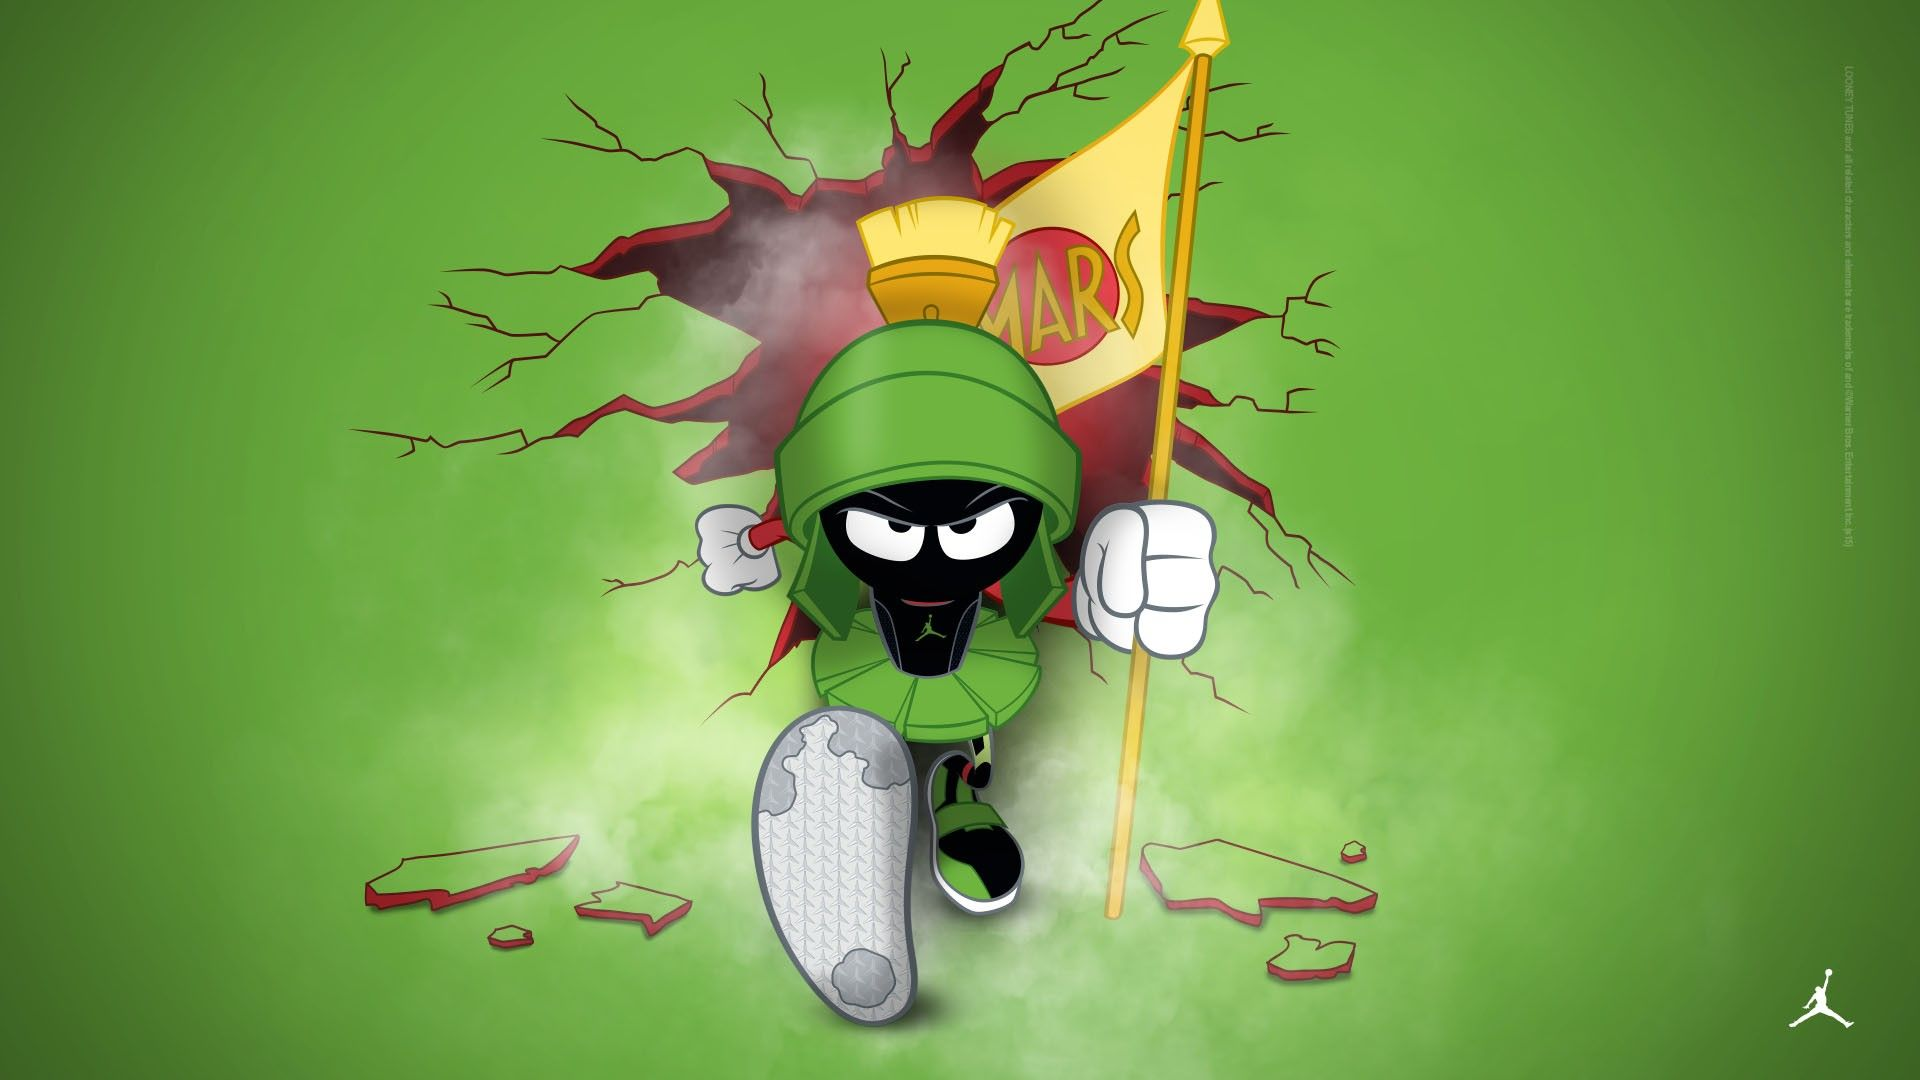 Luxury Marvin The Martian Wallpaper For Iphone Marvin The Martian The Martian Looney Tunes Wallpaper